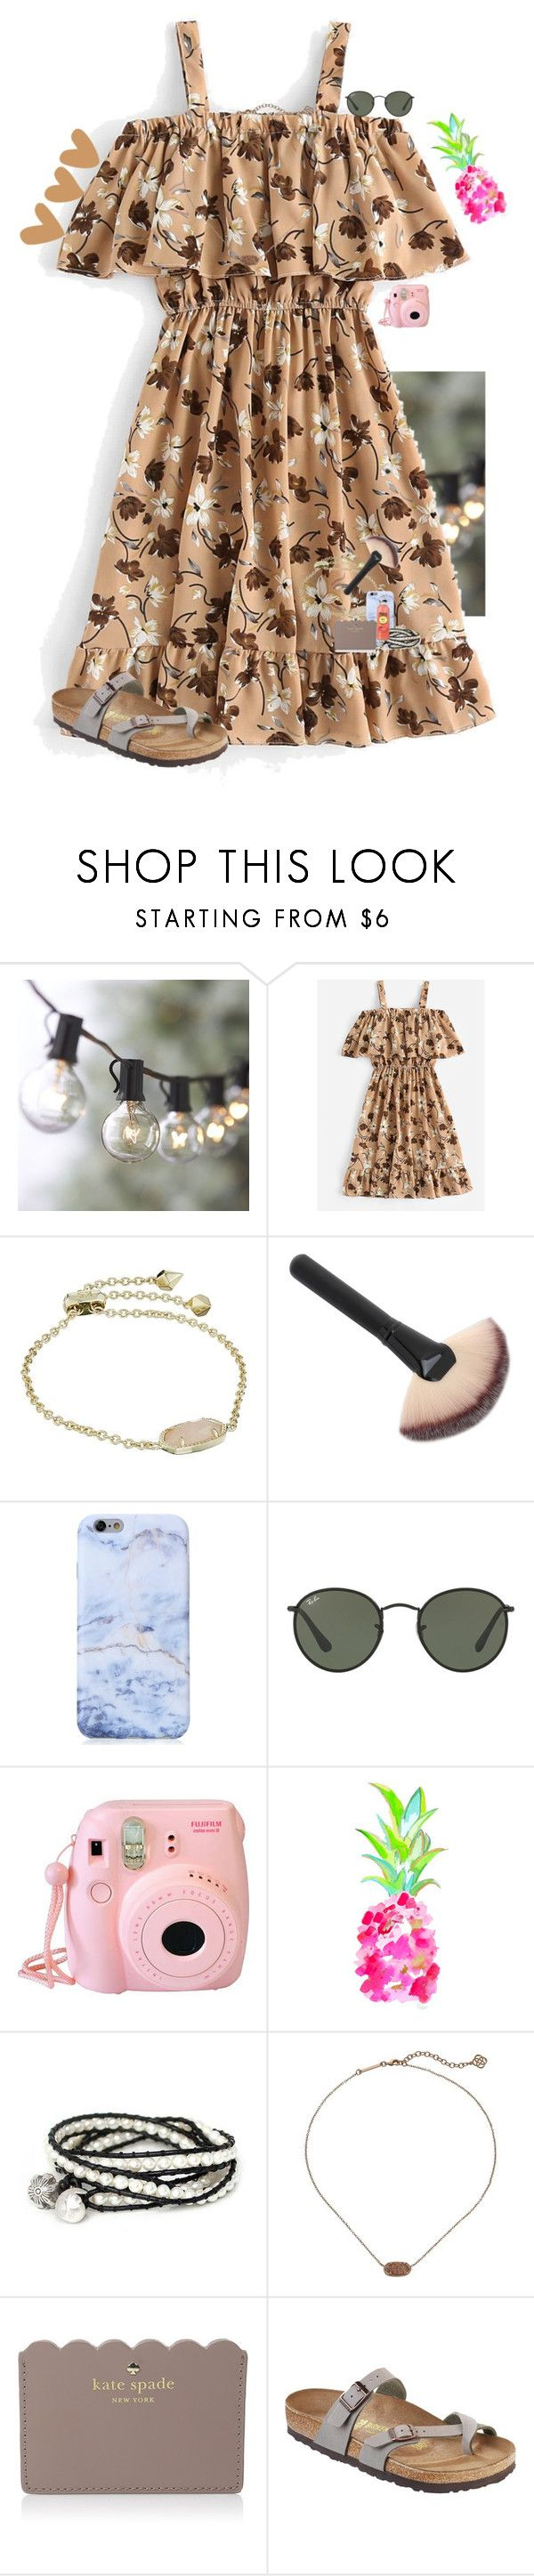 """••"" by mackenzielacy814 on Polyvore featuring Crate and Barrel, Kendra Scott, Ray-Ban, Fujifilm, WALL, NOVICA, Kate Spade and Birkenstock"